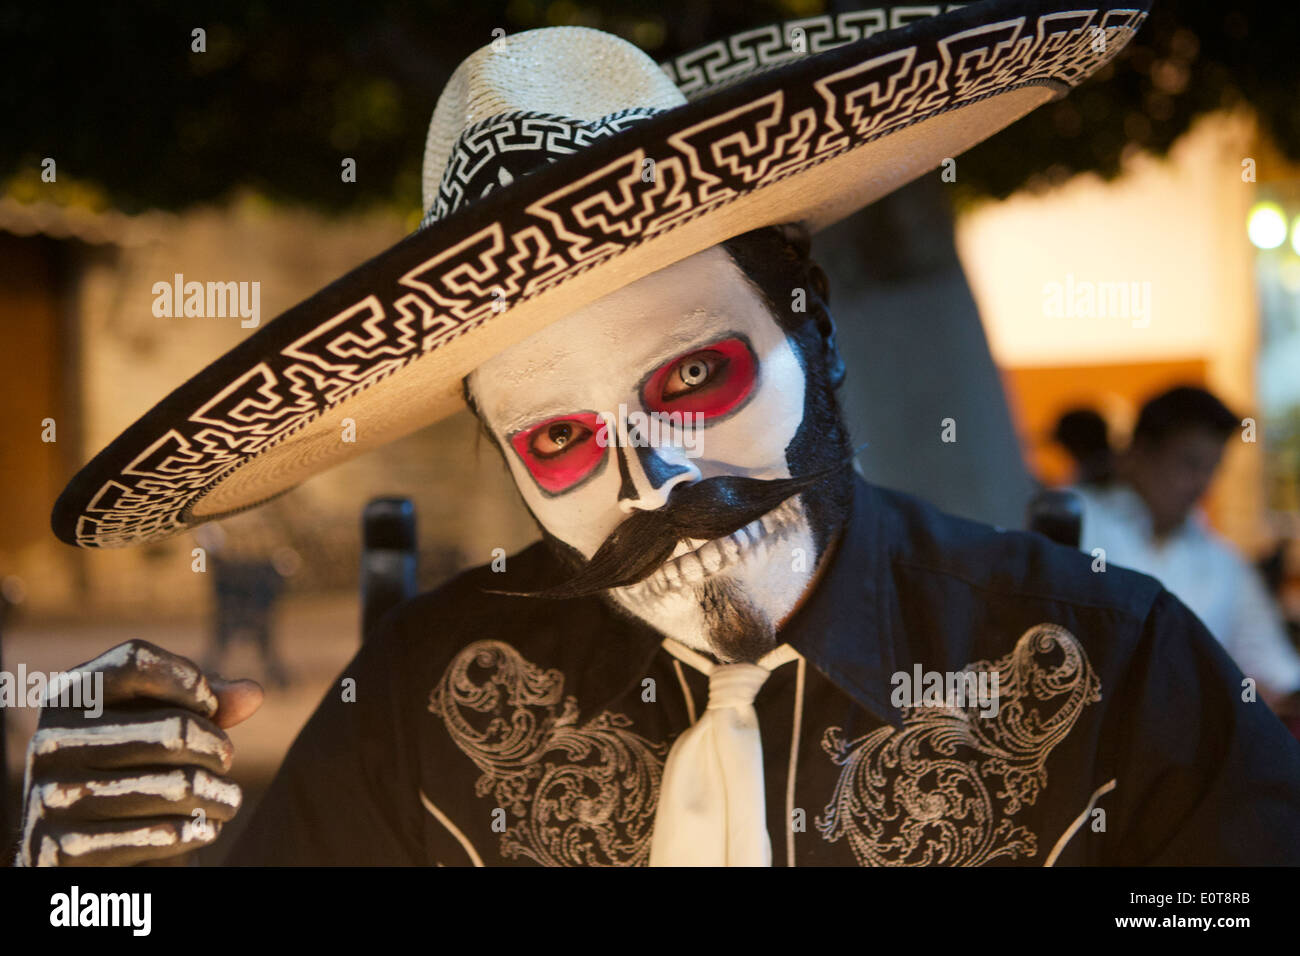 Close-up street mime artist dressed as Day of the Dead skeleton at night Guanajuato Mexico - Stock Image